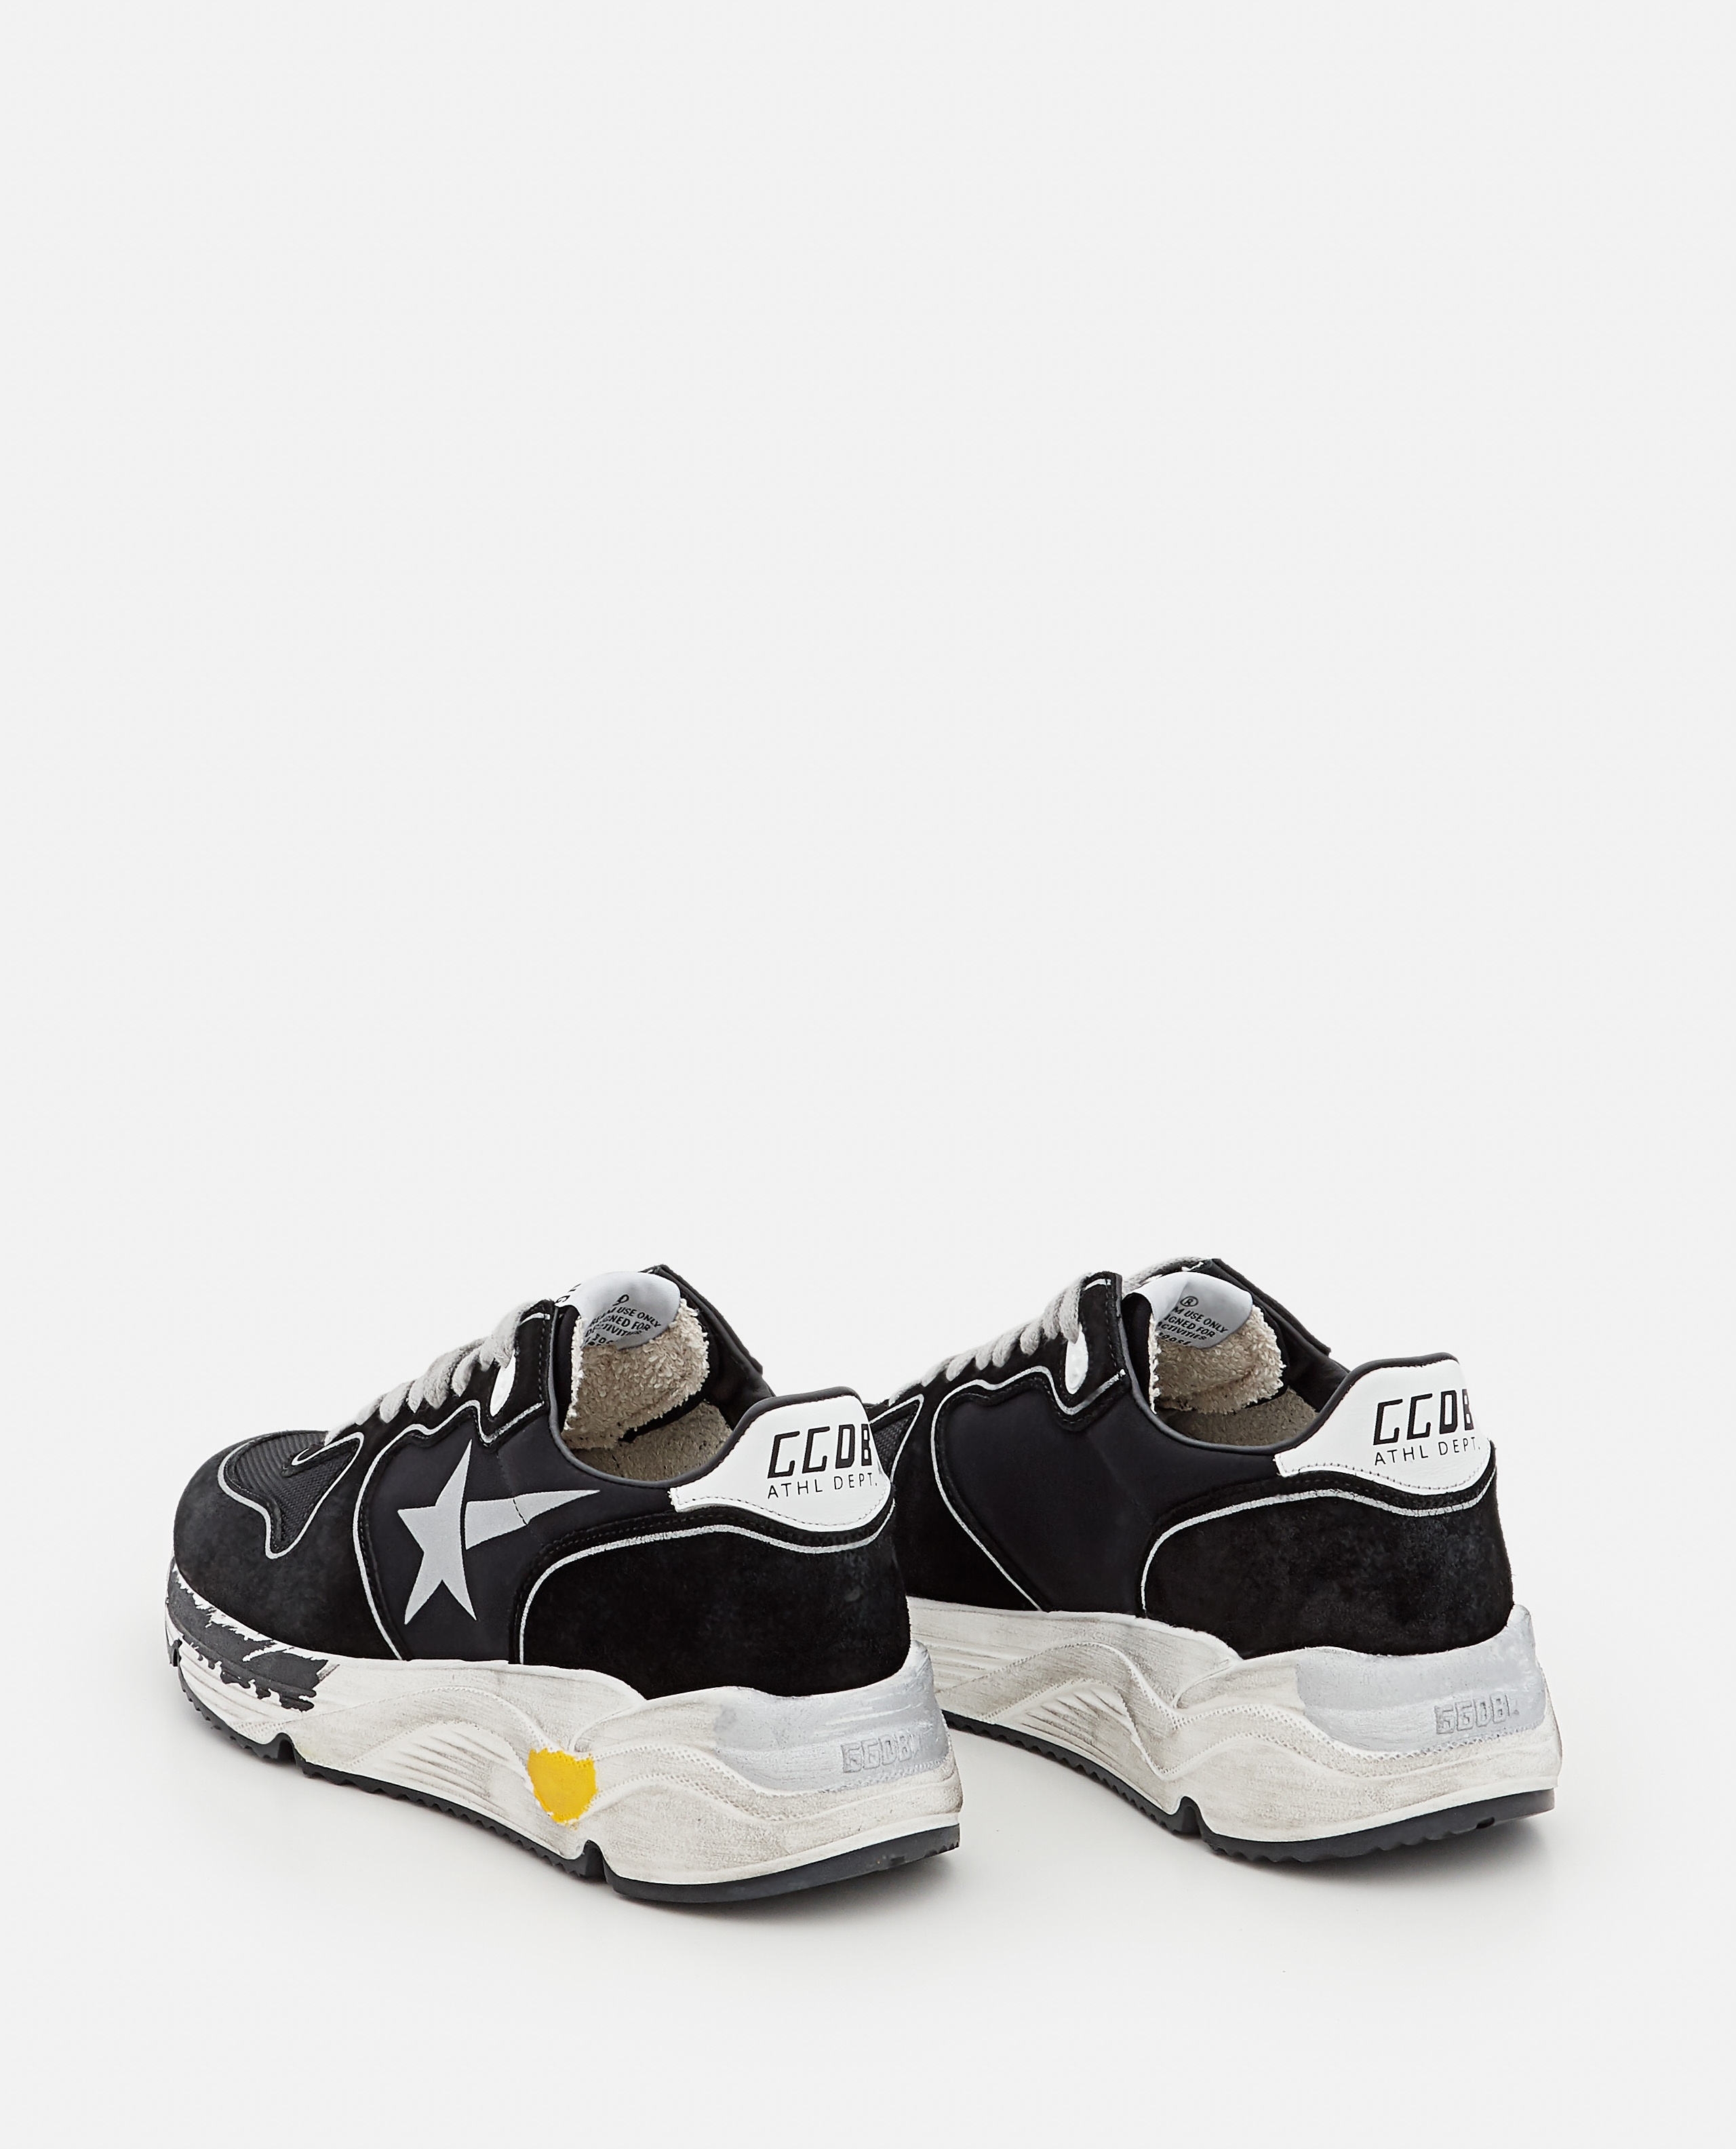 RUNNING SOLE LYCRA AND LEATHER SNEAKERS Women Golden Goose 000322020047097 3